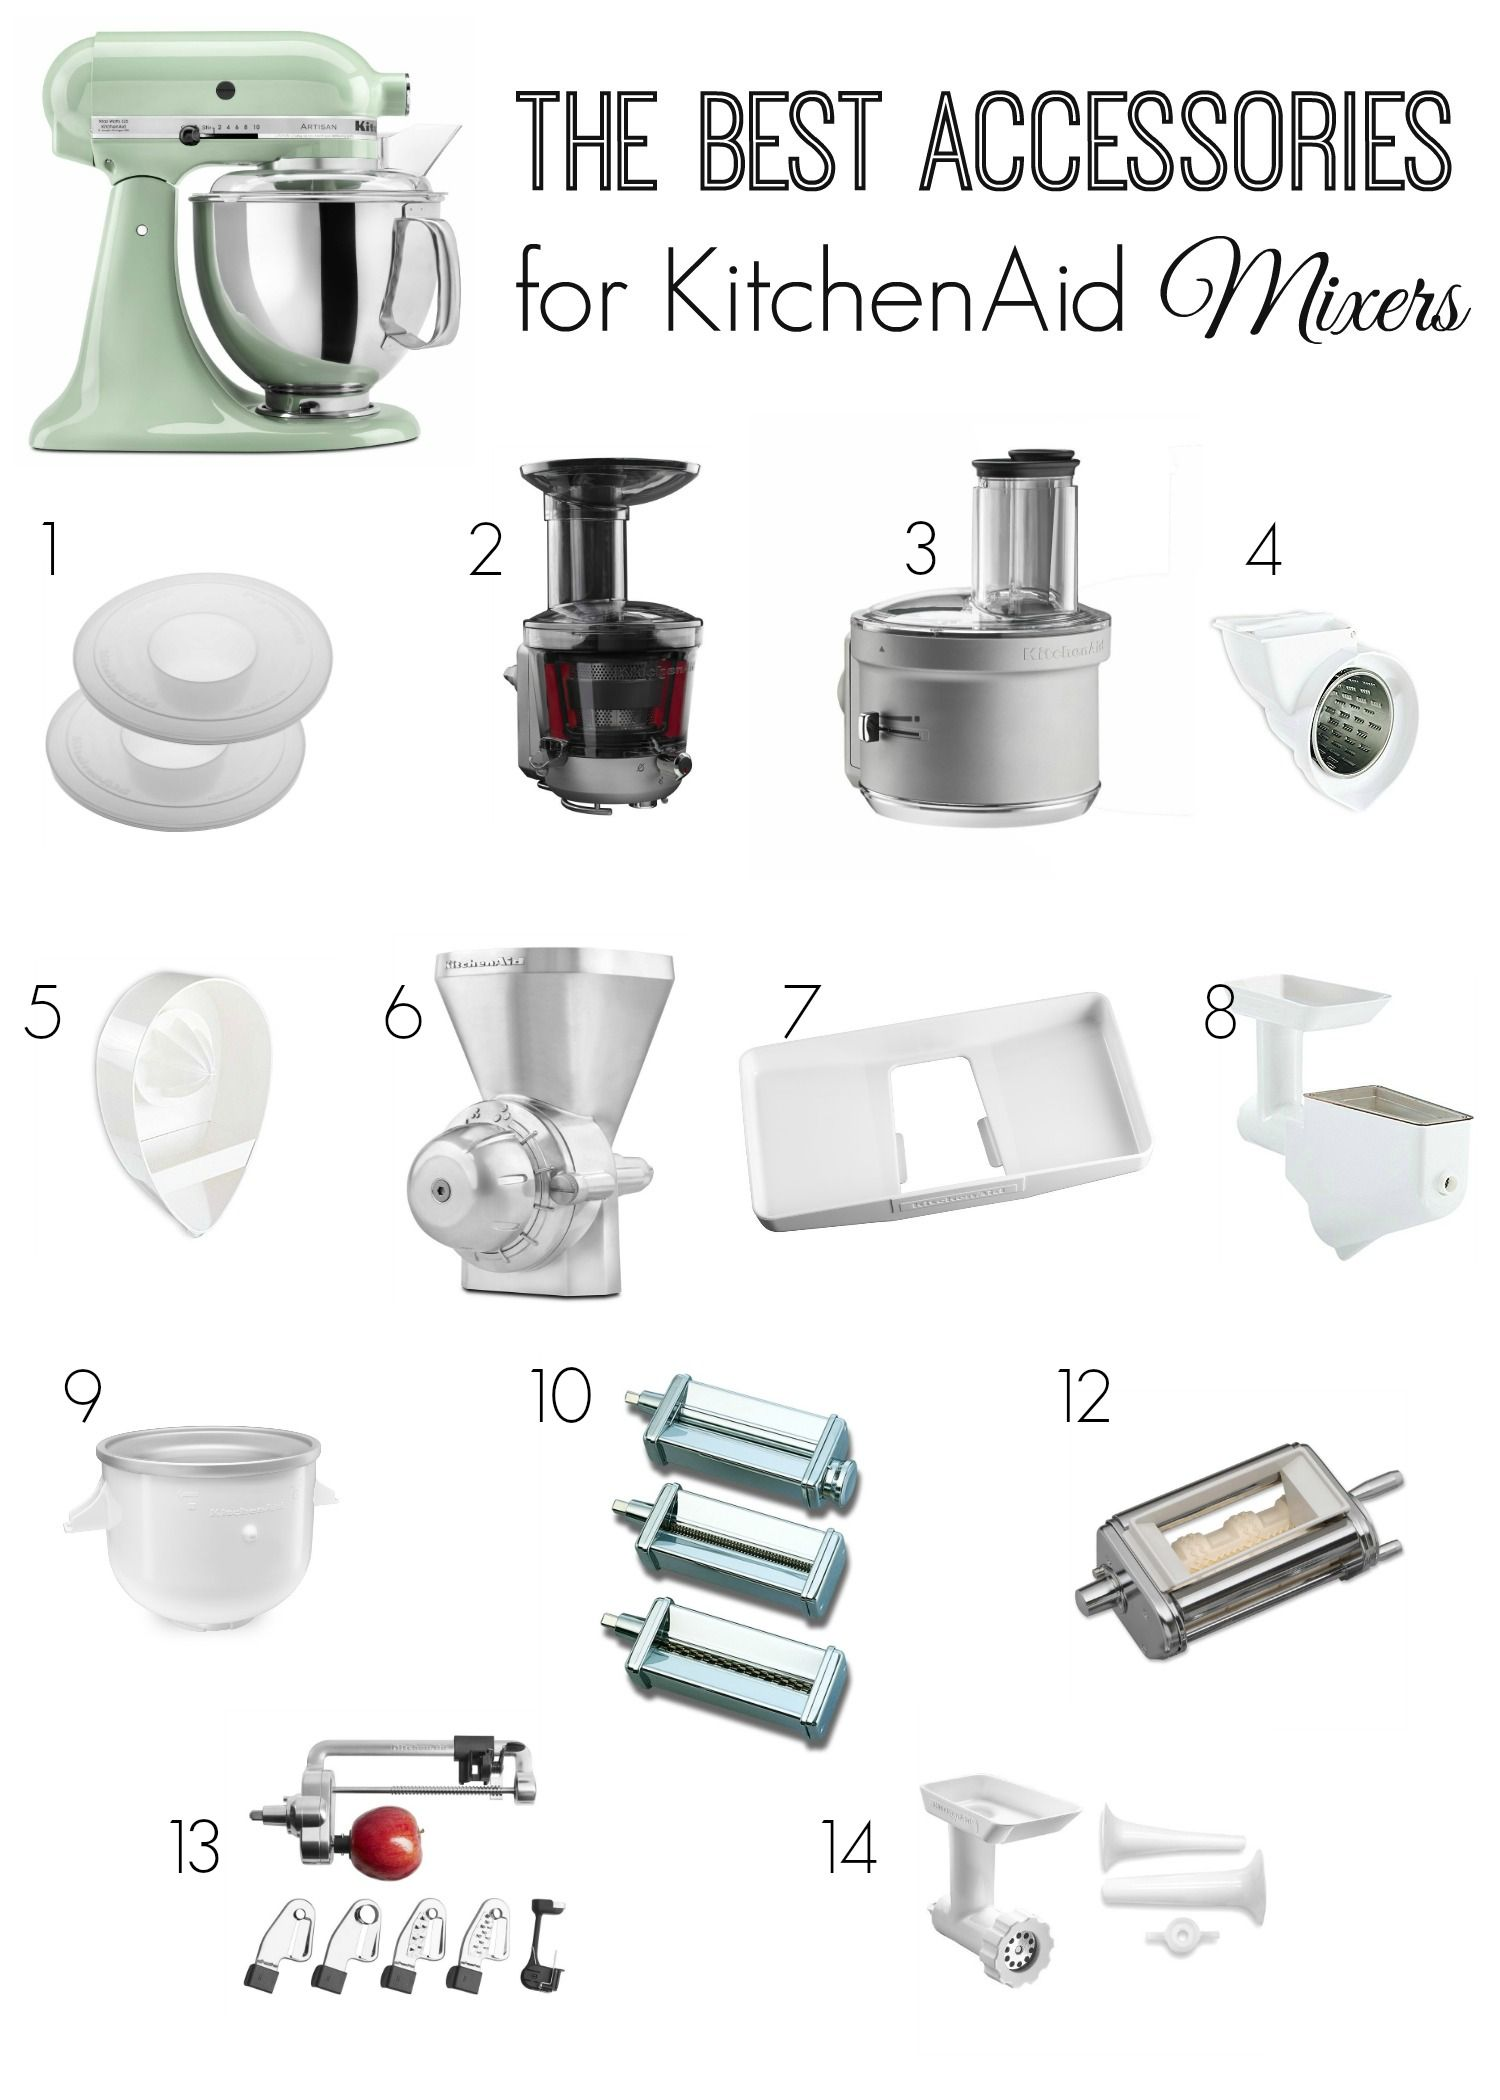 Kitchenaid Mixers Accessories Some Of The Best To Transform Your Mixer Into A Pasta Maker Sausage Stuffer Spiralizer Juicer And More